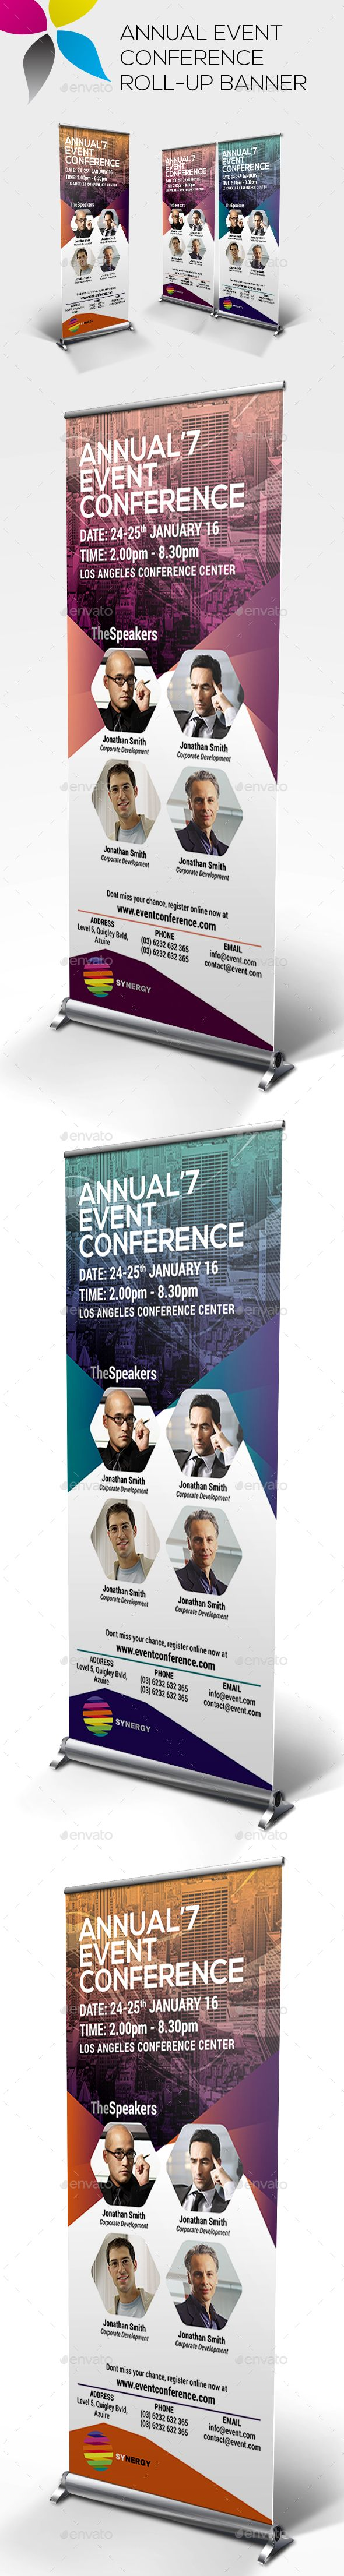 Annual Event Conference Roll-up Banner Template PSD